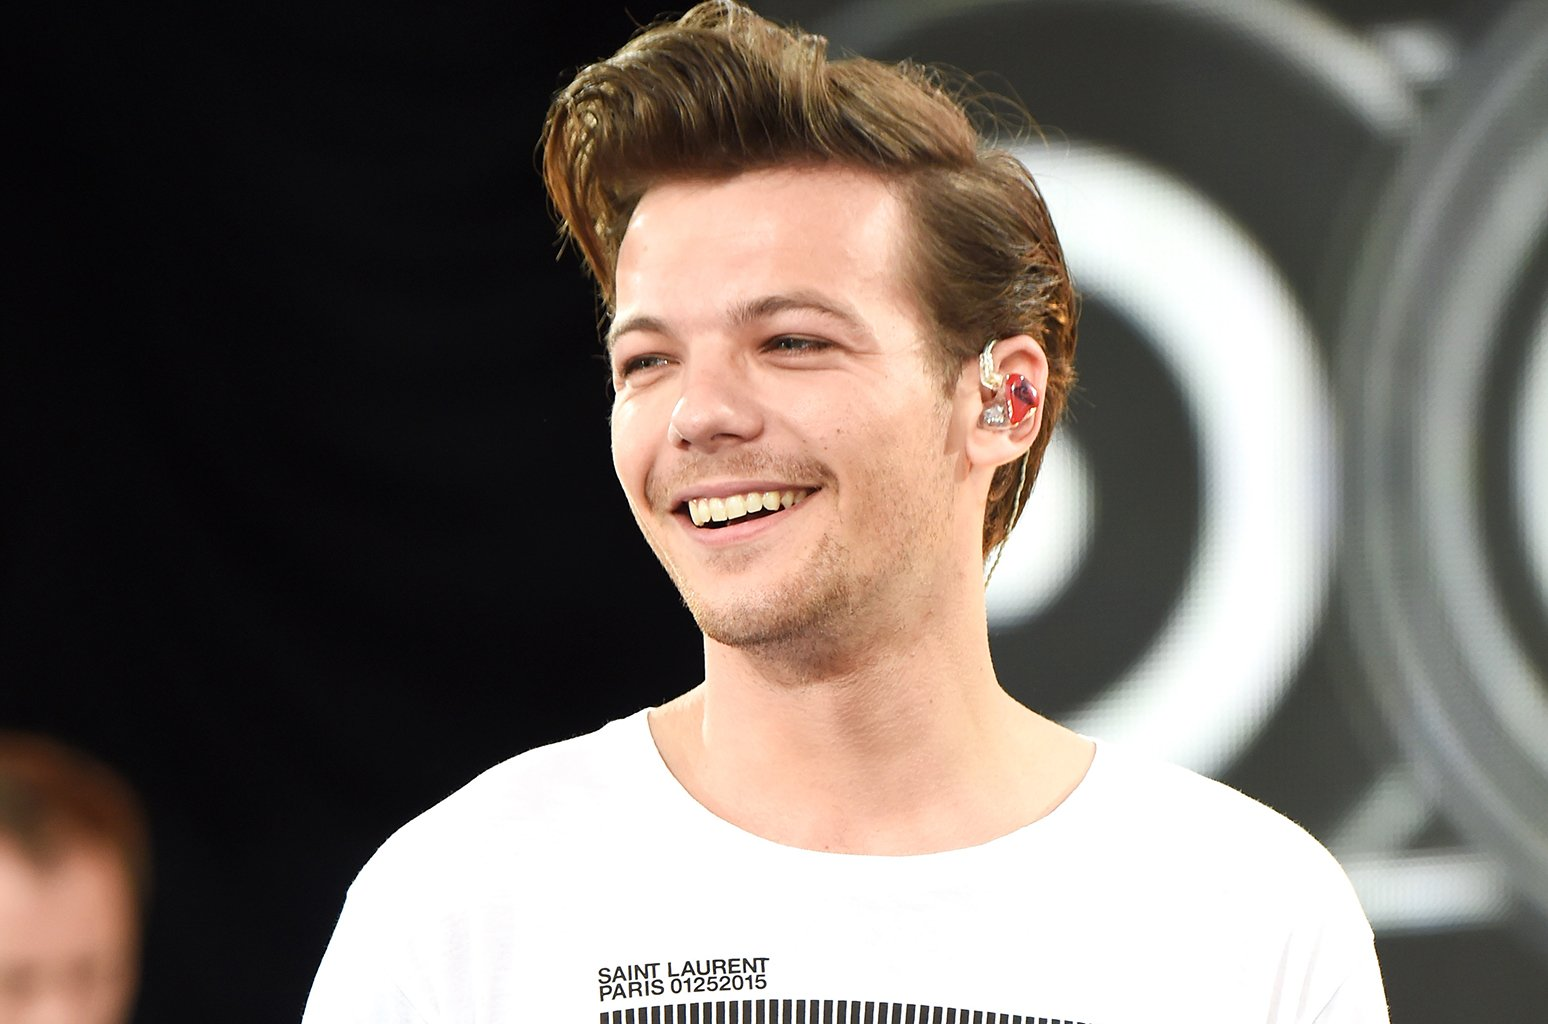 .@Louis_Tomlinson hits No. 2 on the Emerging Artists chart! https://t.co/WIQVwpgDaW https://t.co/kxtJ9pTTjA